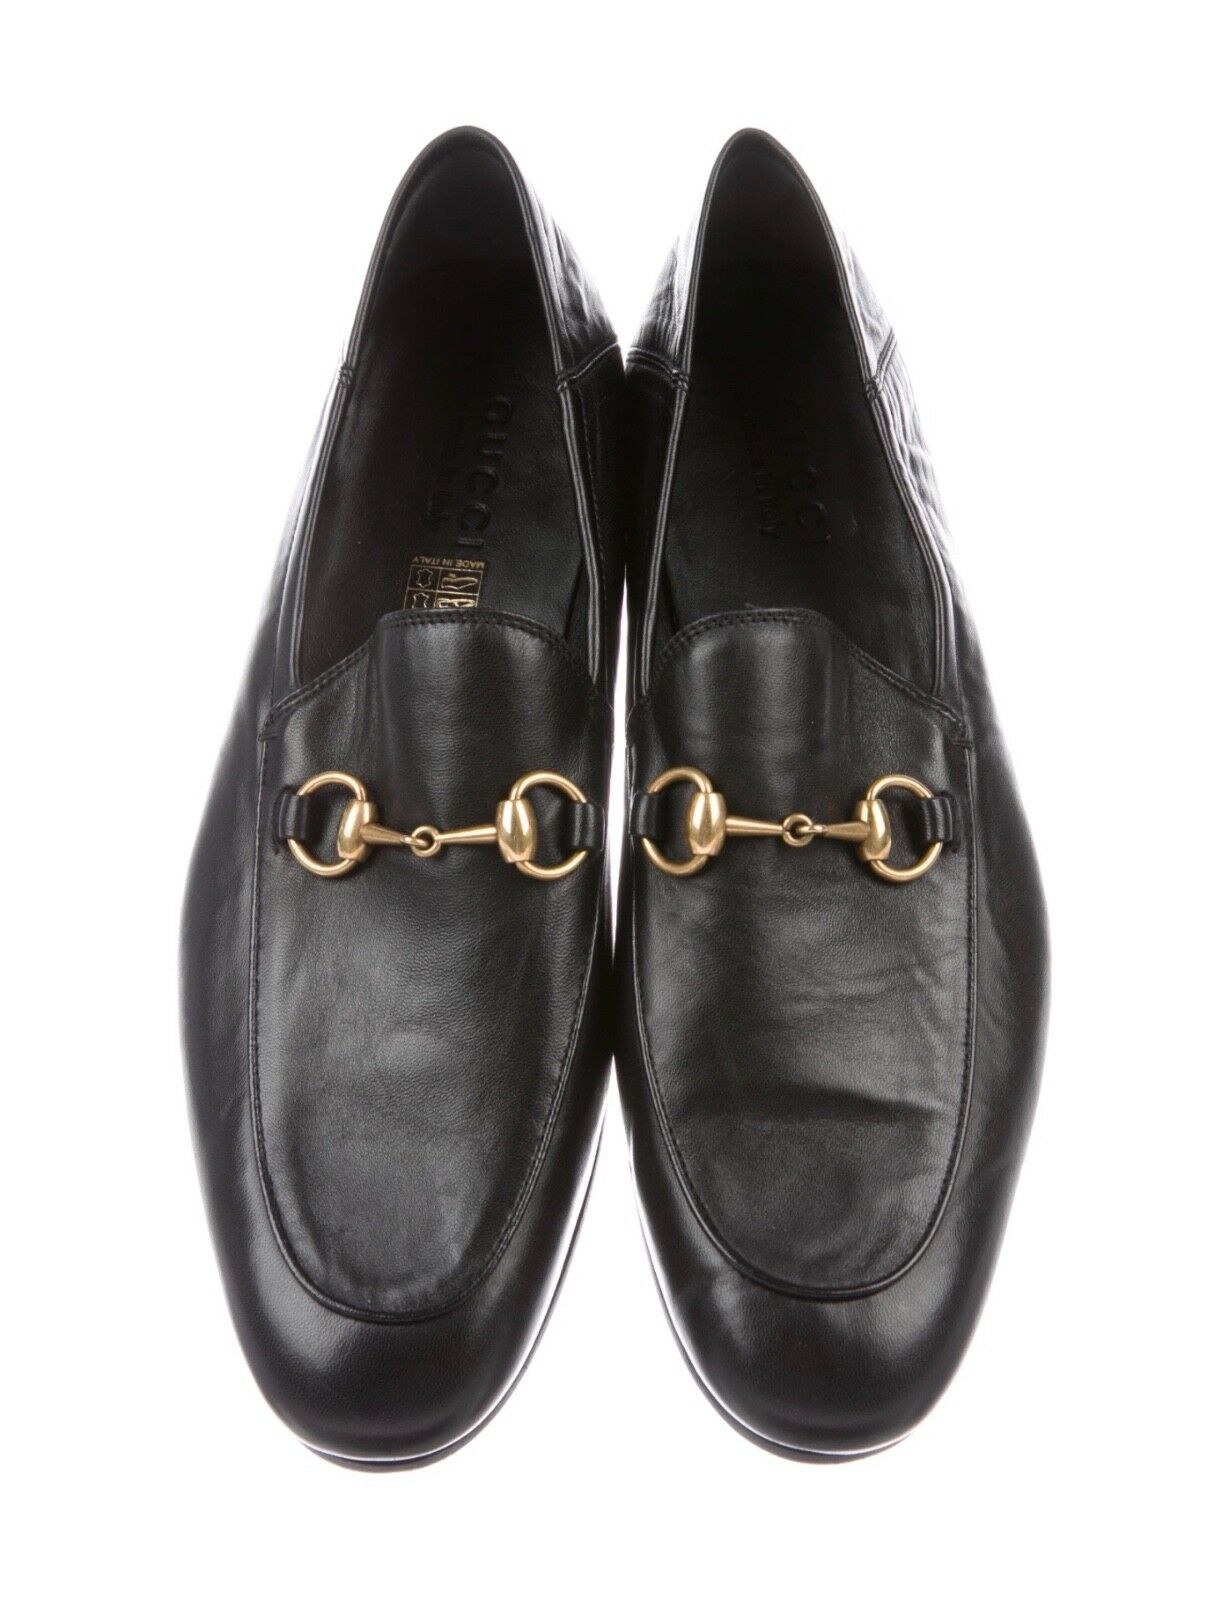 Gucci Brixton Horsebit Loafers Black Leather Shoes 9 Us 85 Uk D Island Casual Zappato England Suede 1 Of 4 See More